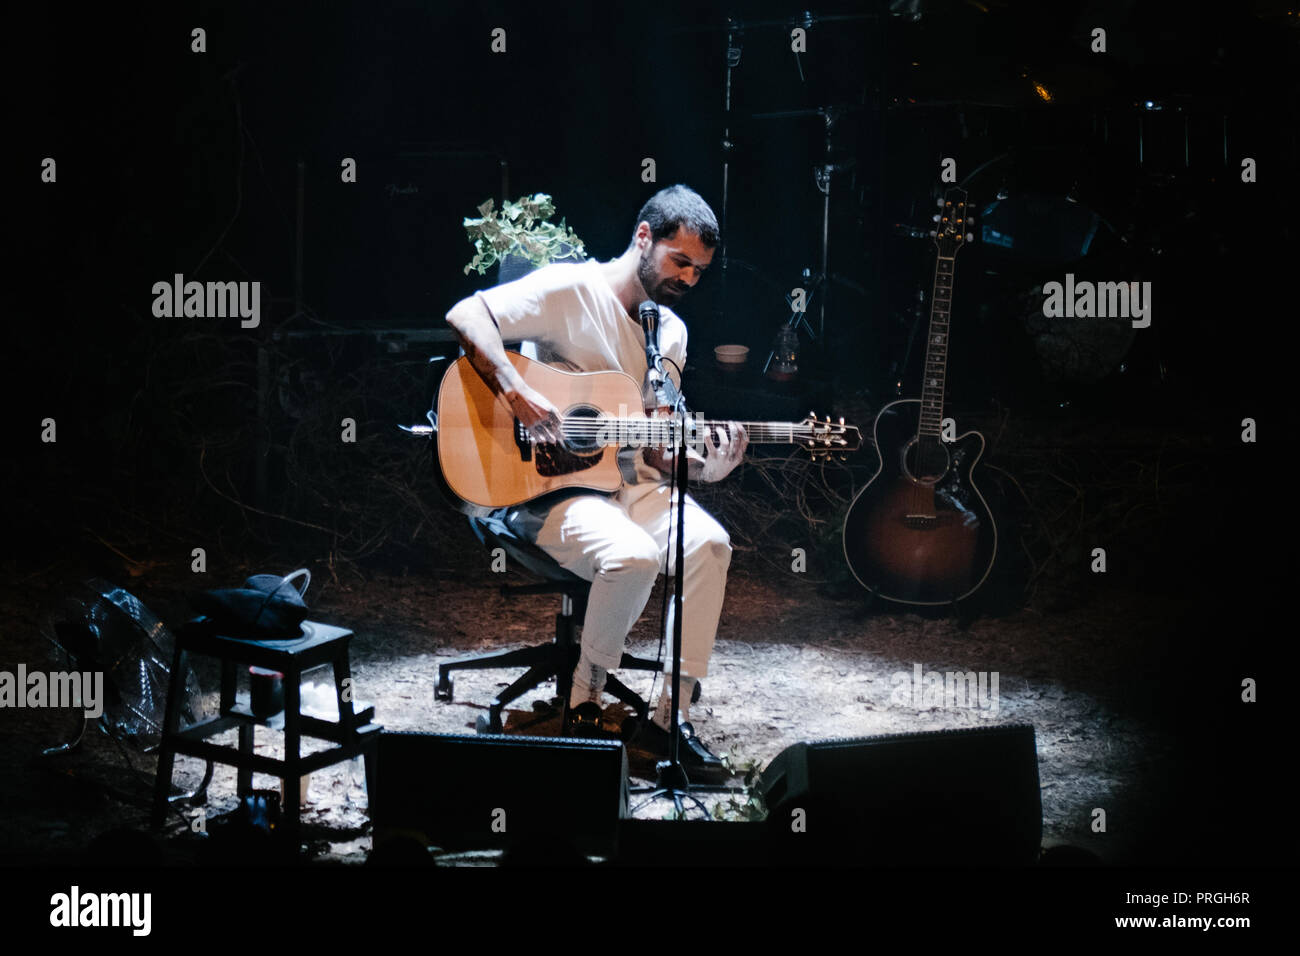 Milan, Italy. 1st October, 2018. The scottish band Biffy Clyro performs on stage during the MTV Unplugged European Tour. Luca Quadrio/Alamy Live News Stock Photo